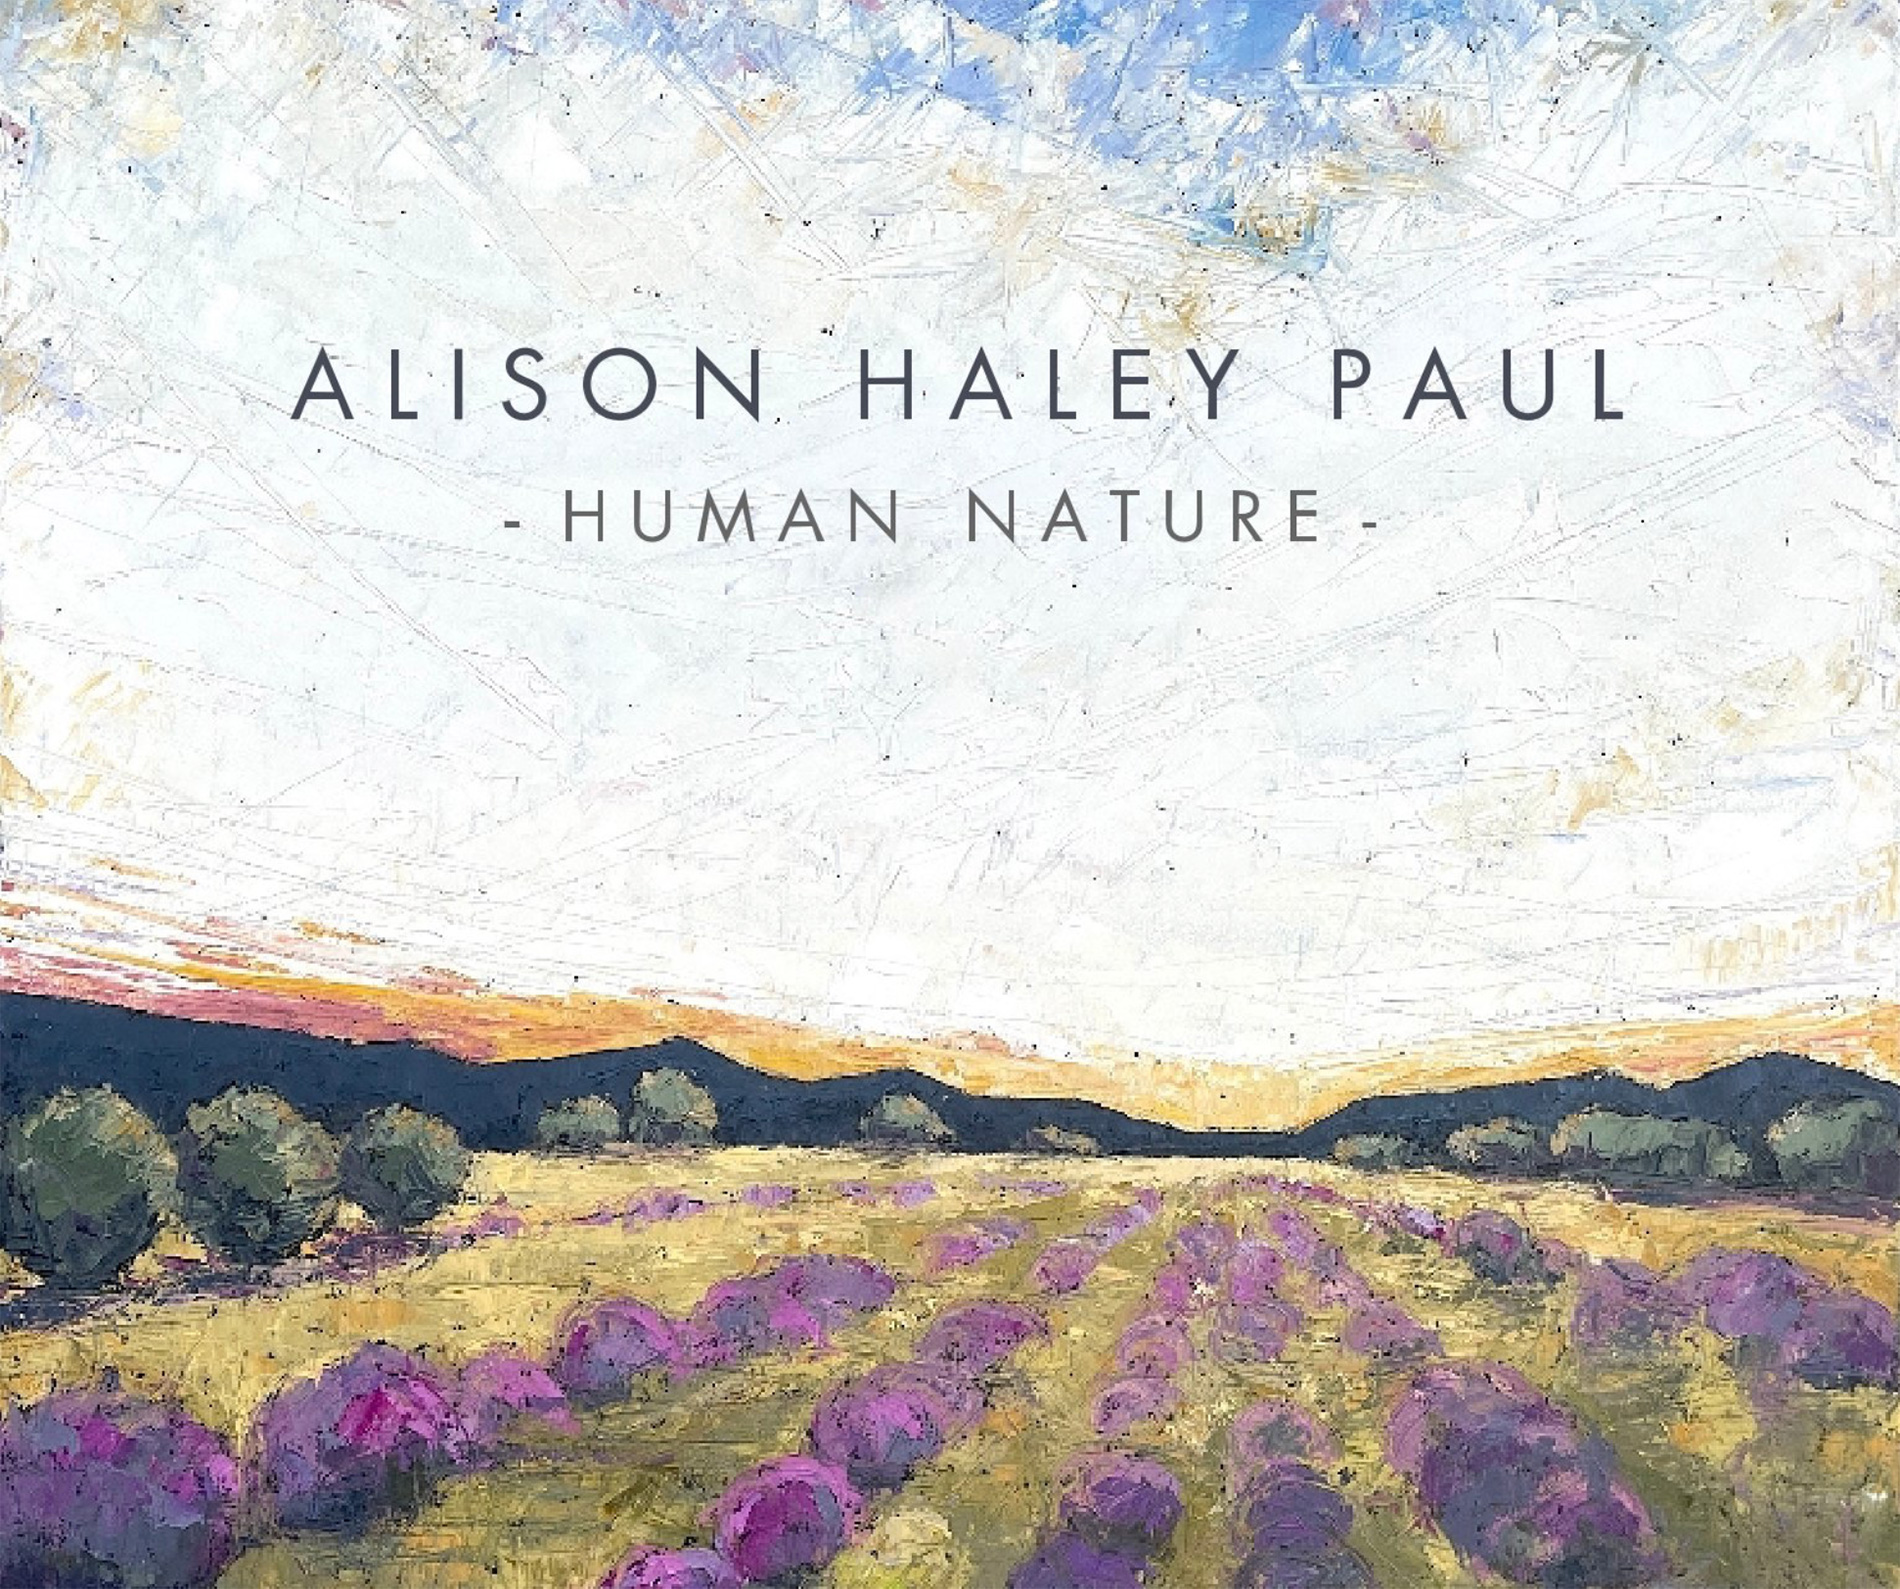 """Alison Haley Paul - Synopsis"""" with """"Alison Haley Paul - Human Nature"""